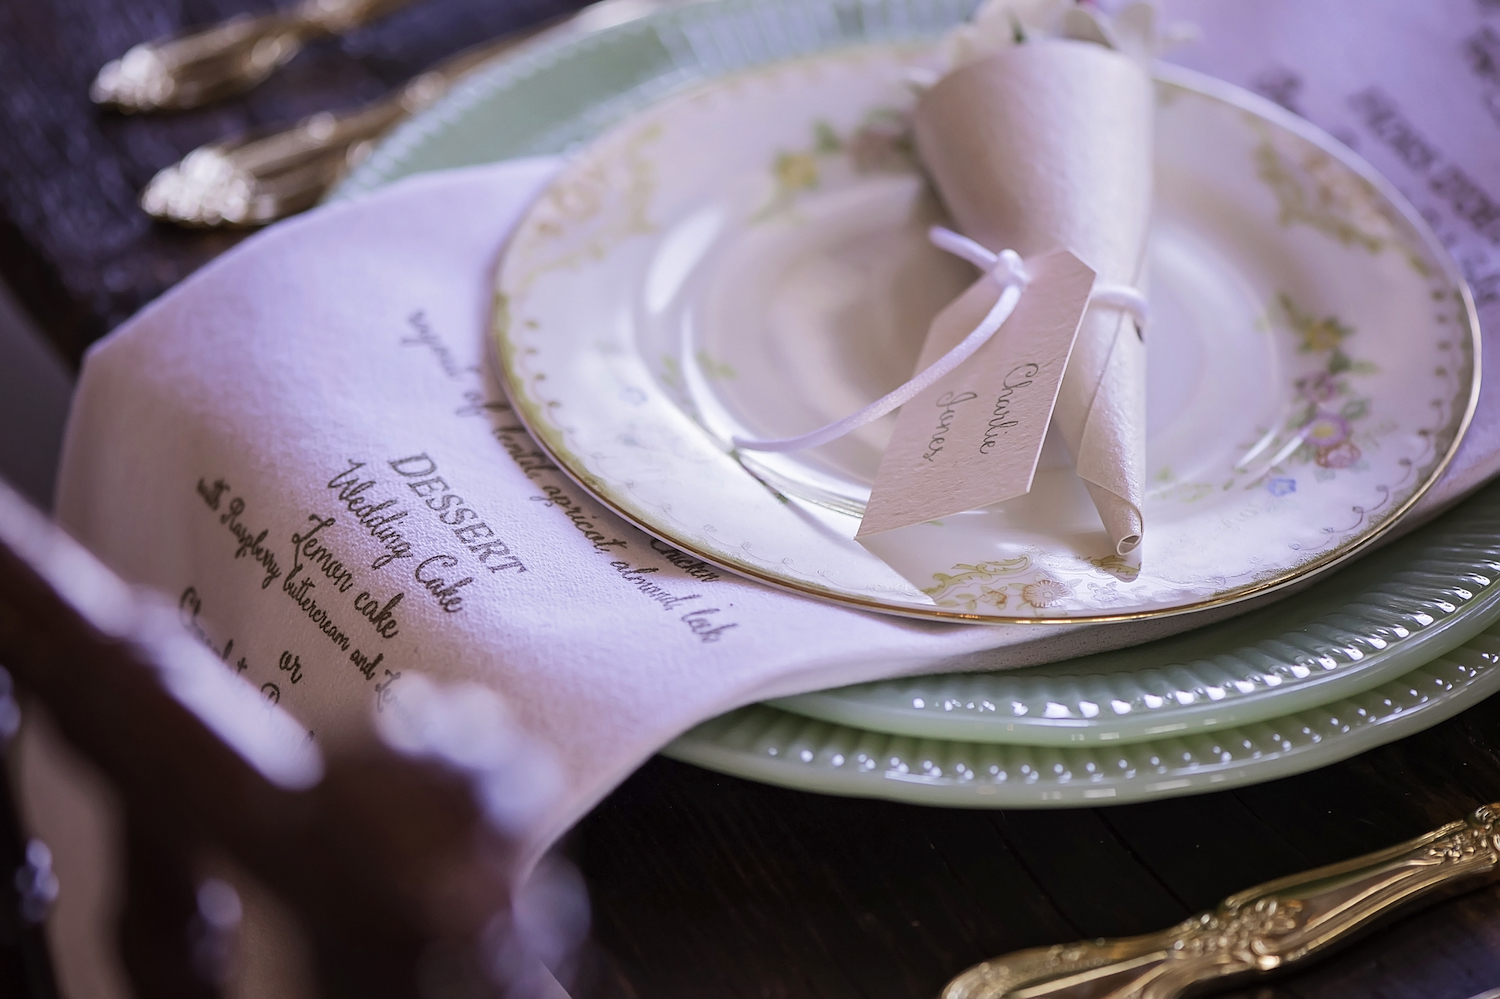 Hand Printed Tea Towel Wedding Menu for Place Settings - layered between dishes / photo by Maria Nicole Photography